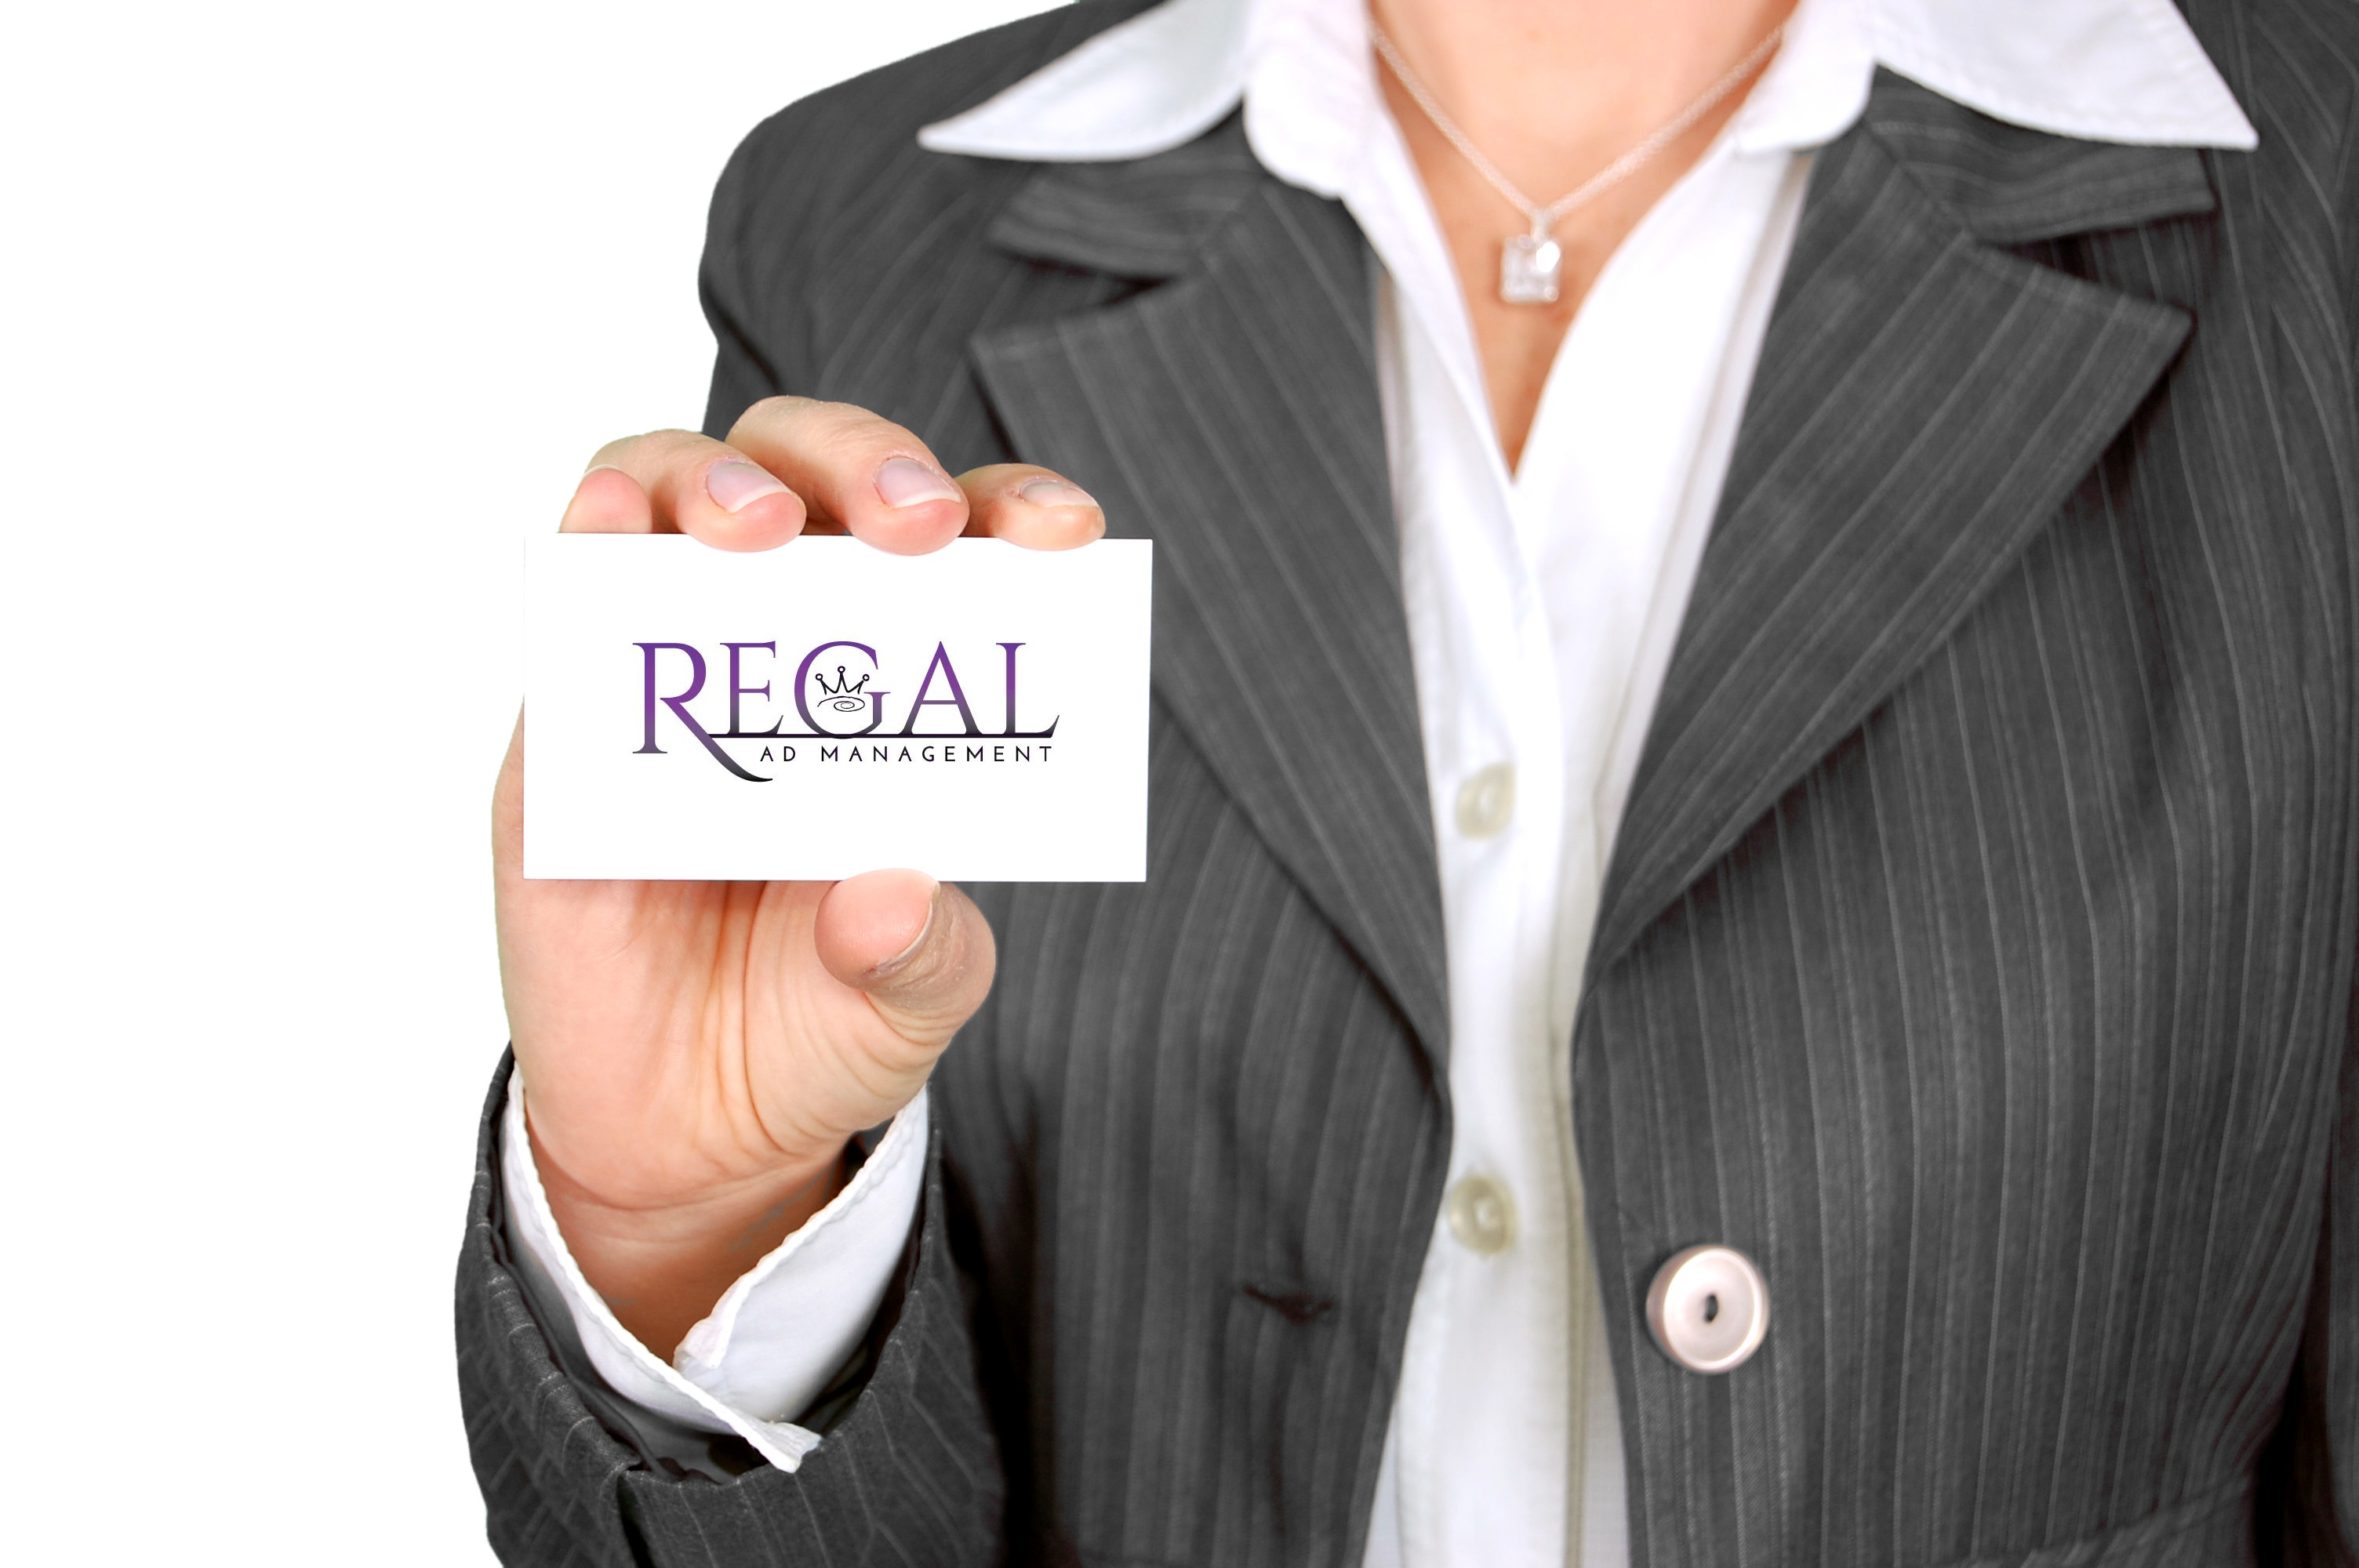 Regal Ad Management Google AdWords Management